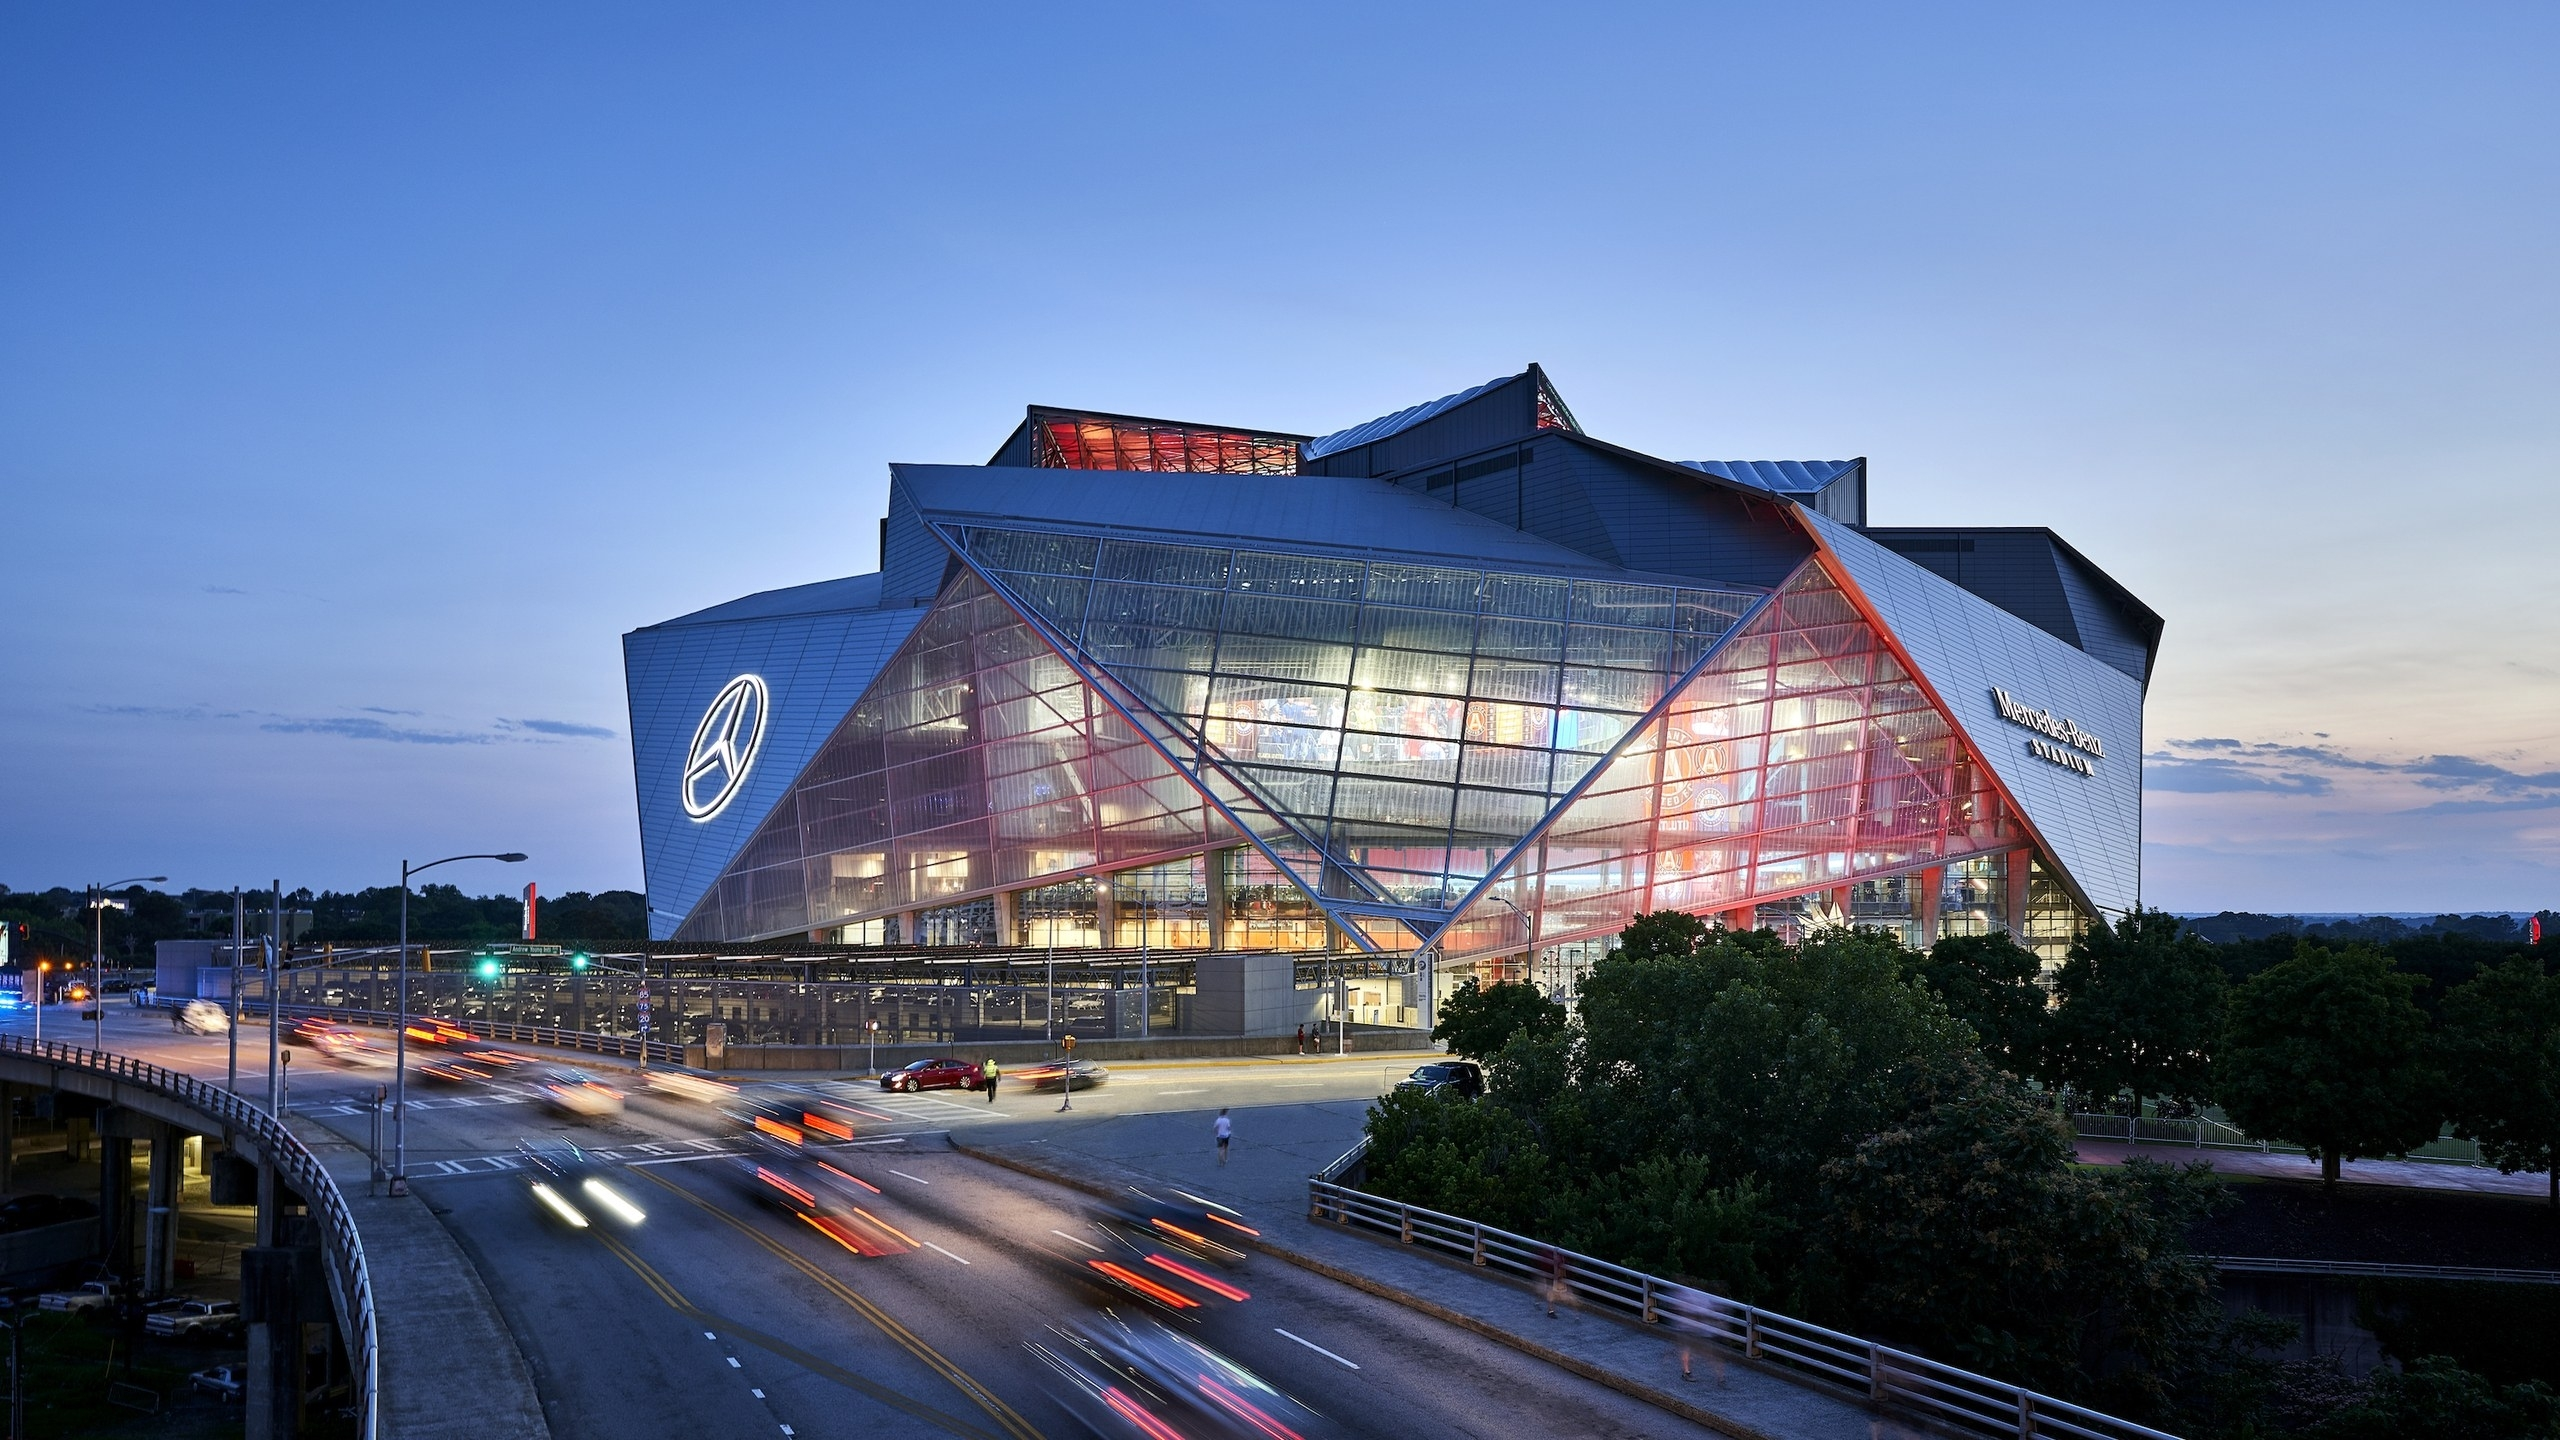 2019 Super Bowl Stadium: 5 Facts You'll Want To Know pertaining to Seating Capacity At Super Bowl 2019